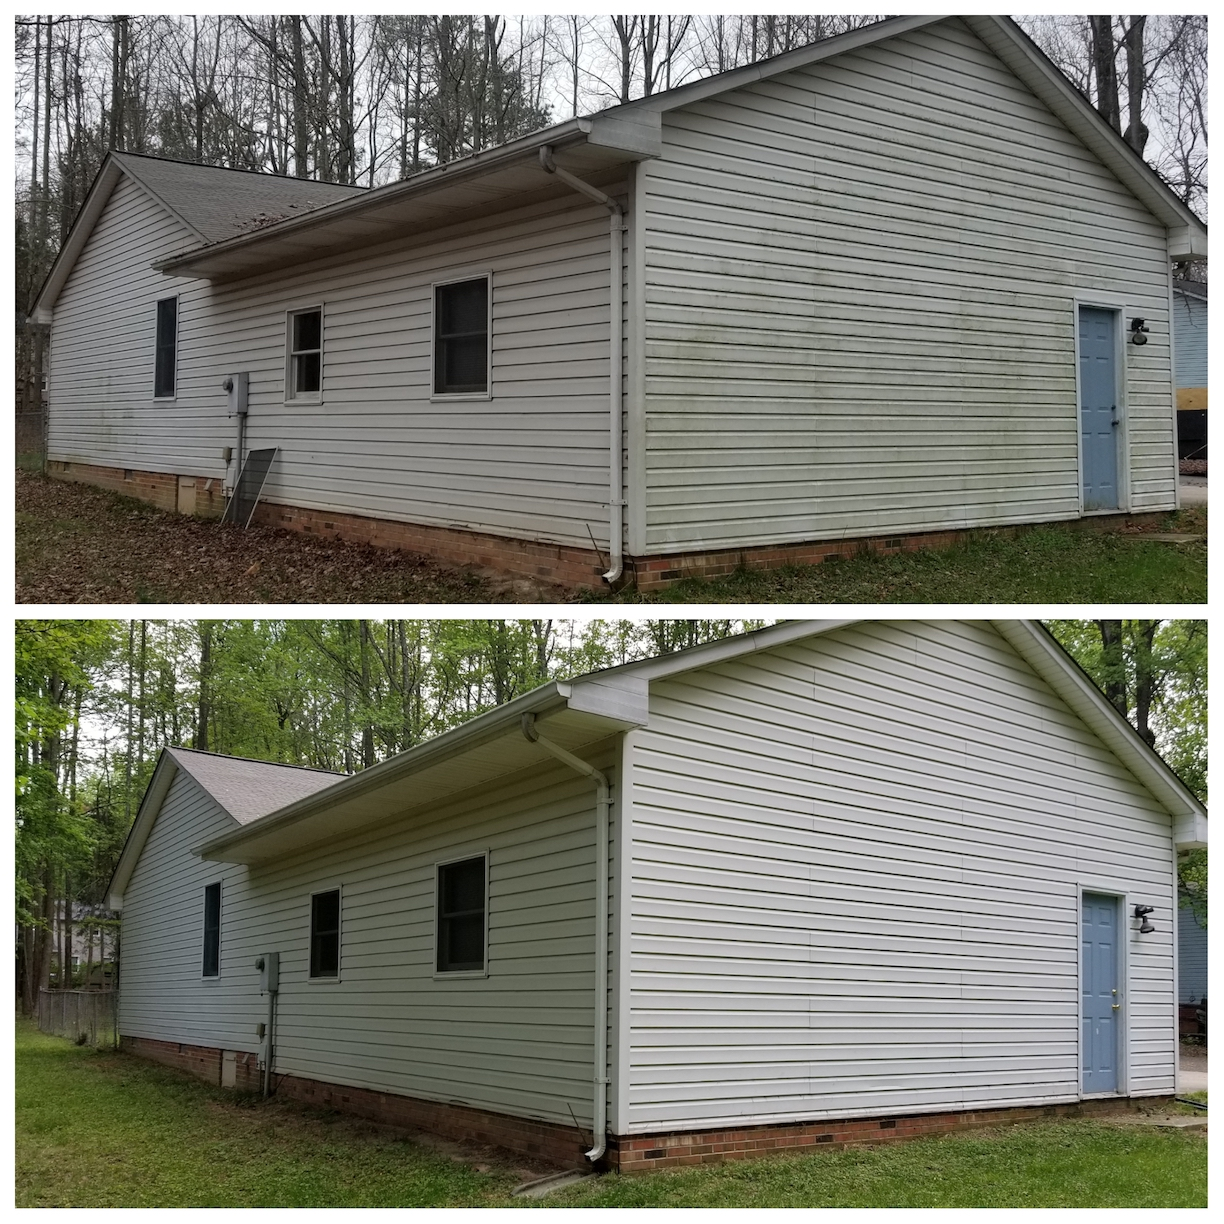 Power Washing, Pressure Washing, House Washing